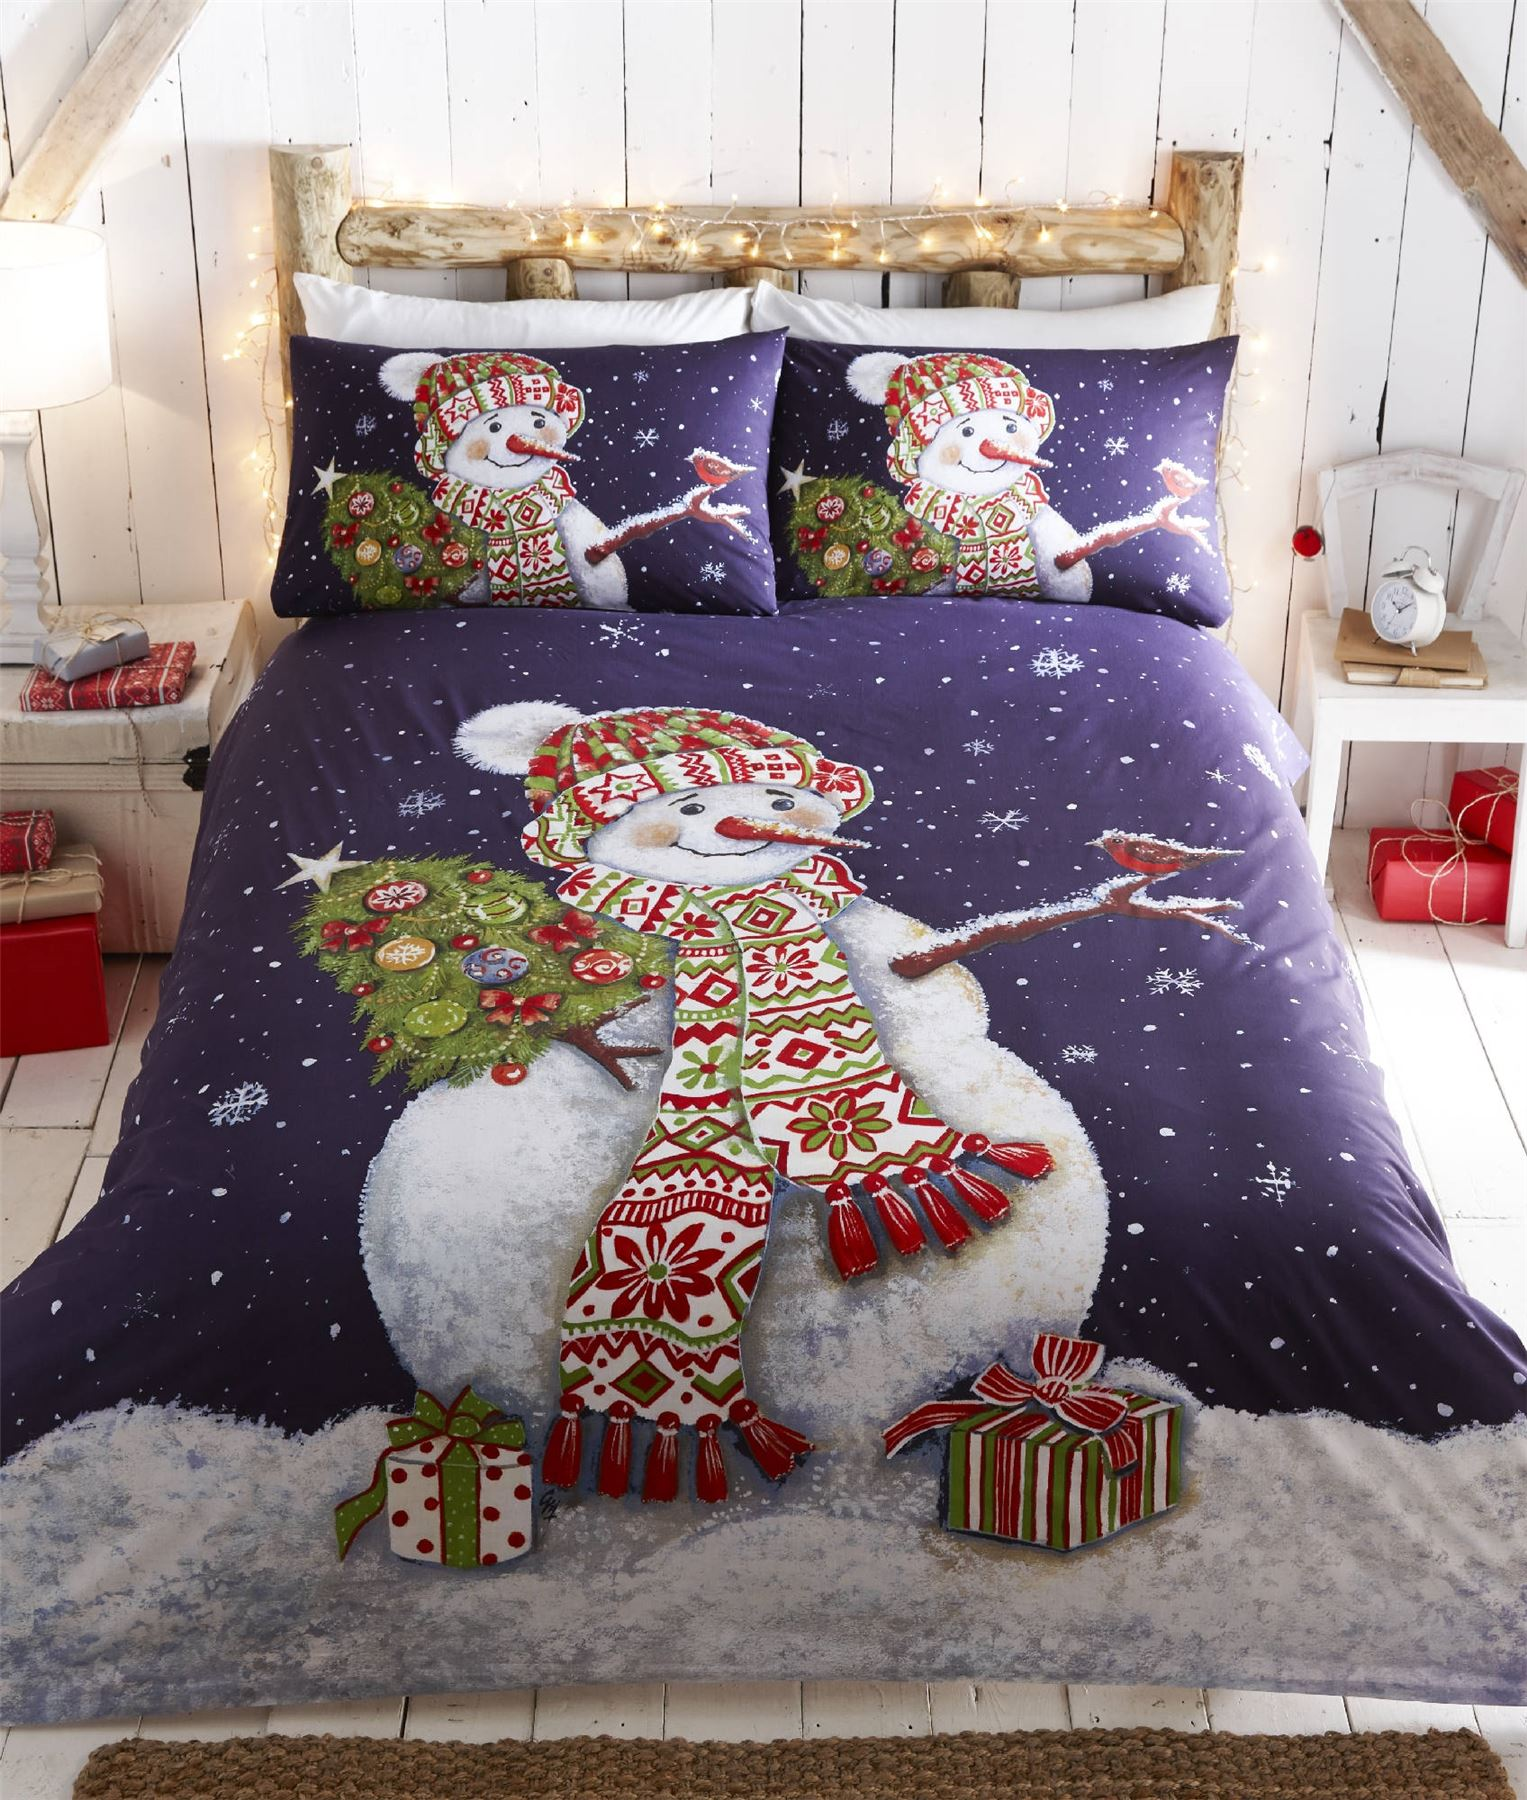 top bedding snow bed spo let cover duvet pillow trending quilt by products christmas it s uk case